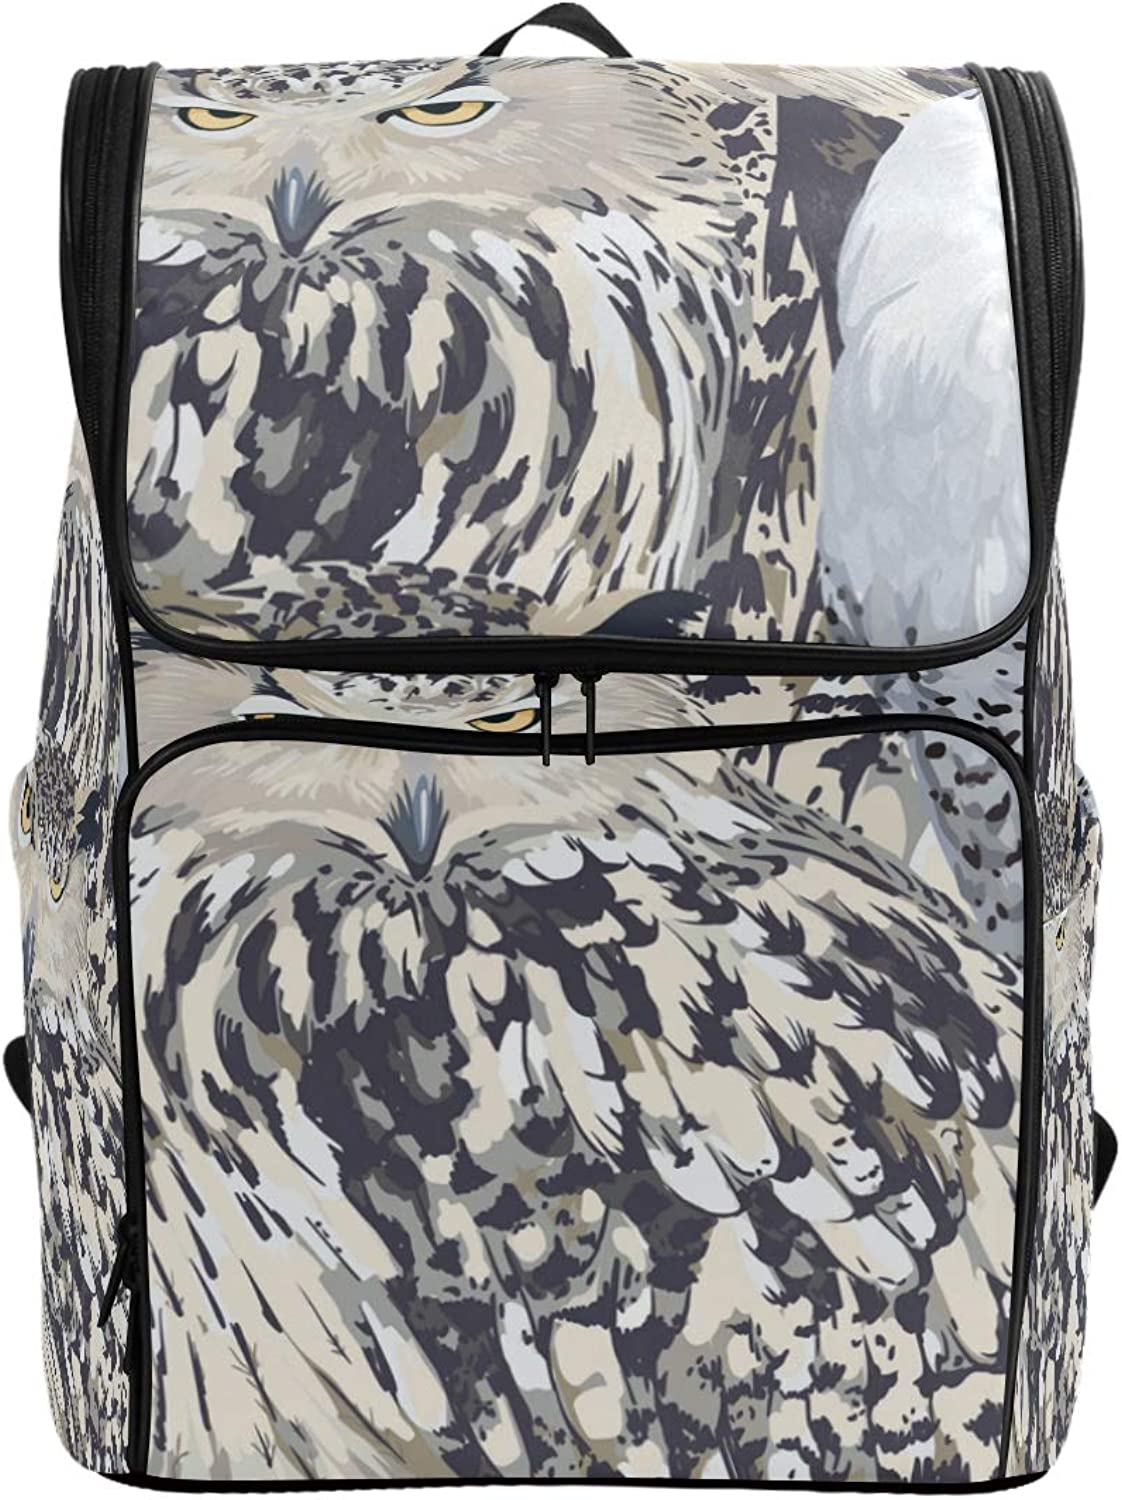 FANTAZIO Eagle Owl and Polar Laptop Outdoor Backpack Travel Hiking Camping Rucksack Pack, Casual Large College School Daypack